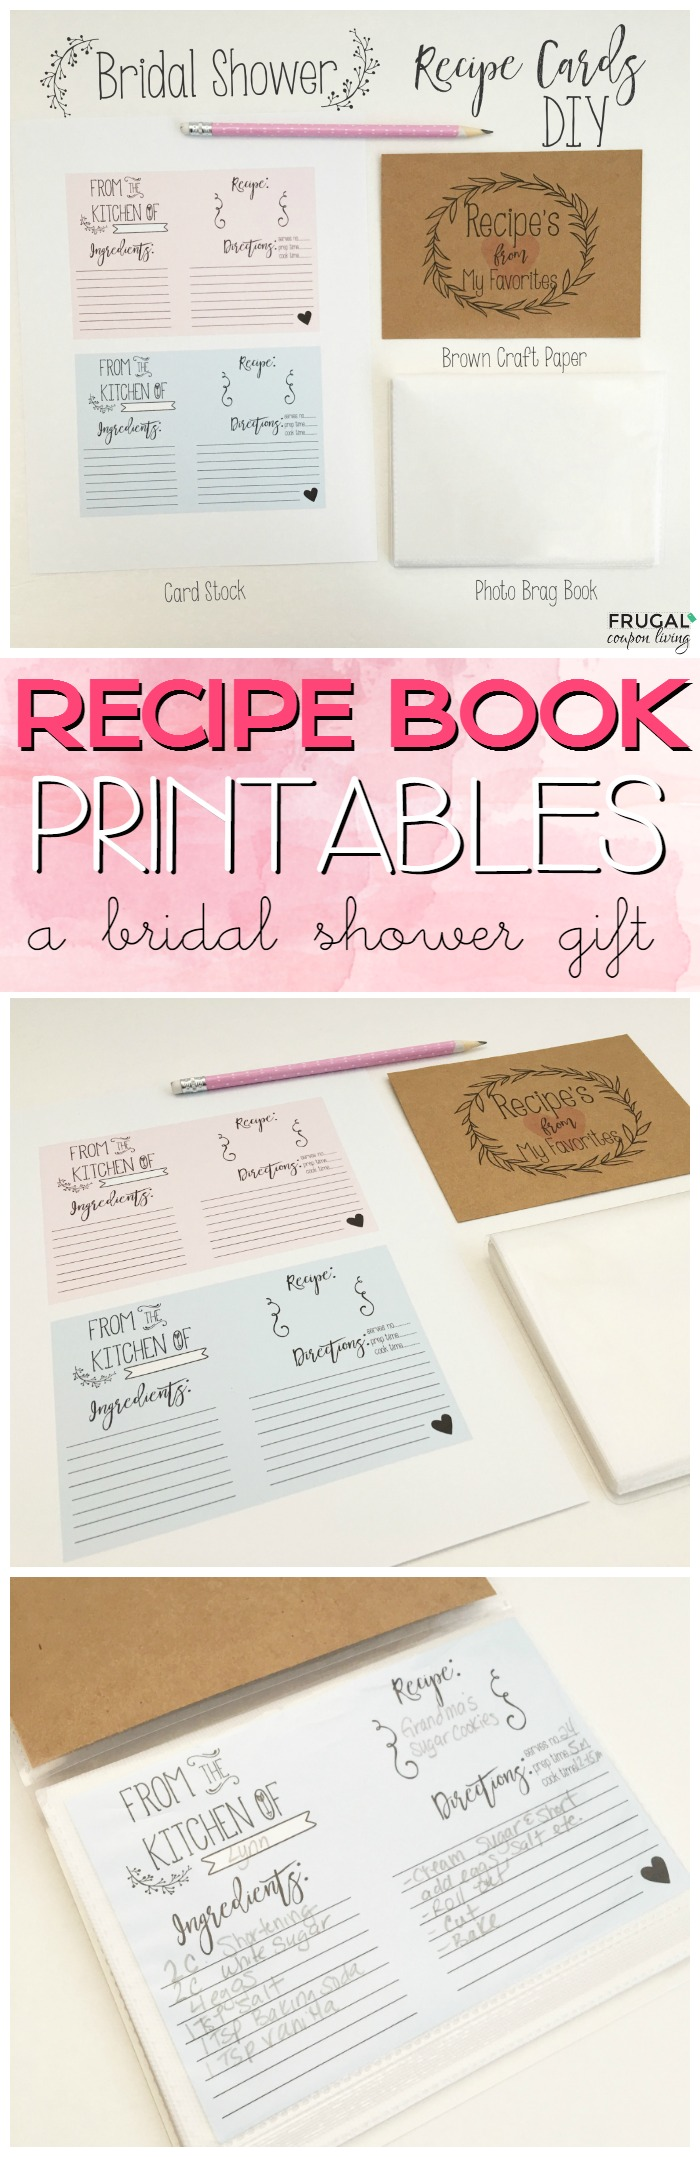 bridal-shower-recipe-book-large-collage-frugal-coupon-living